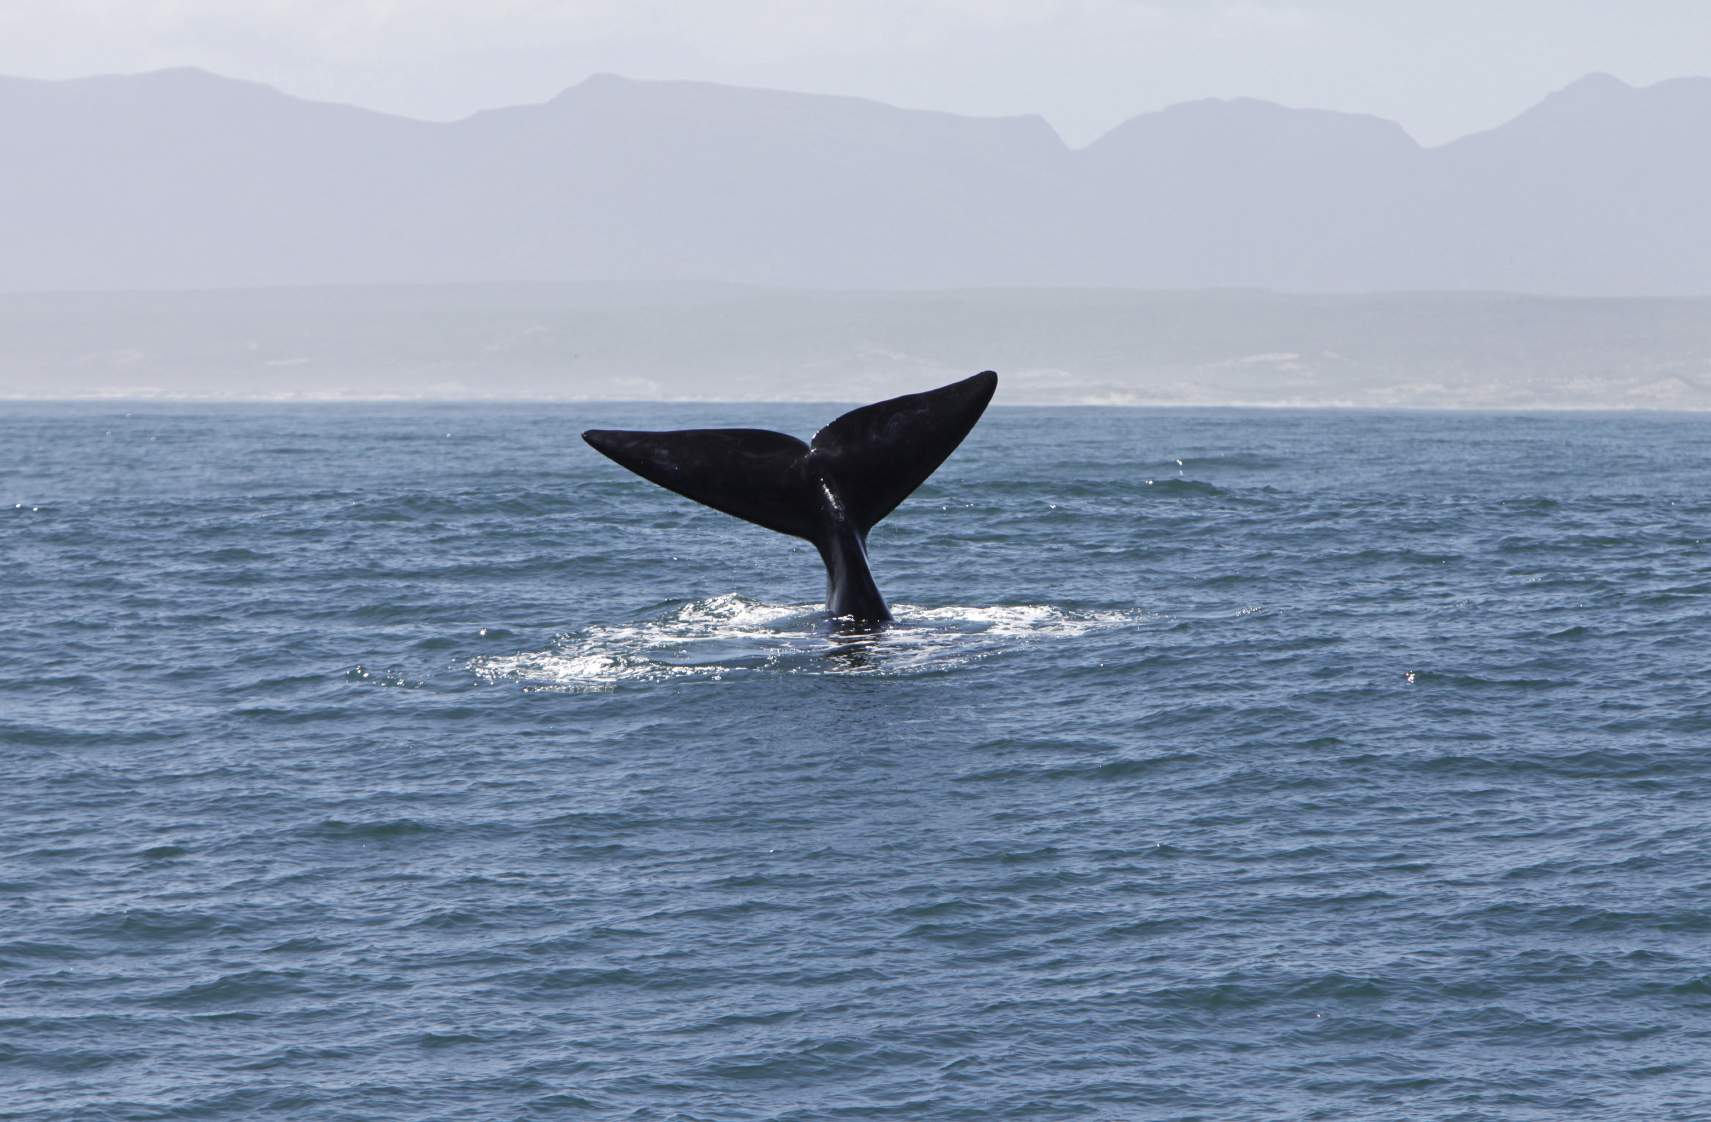 Whale fin visible above the water in South Africa's waters